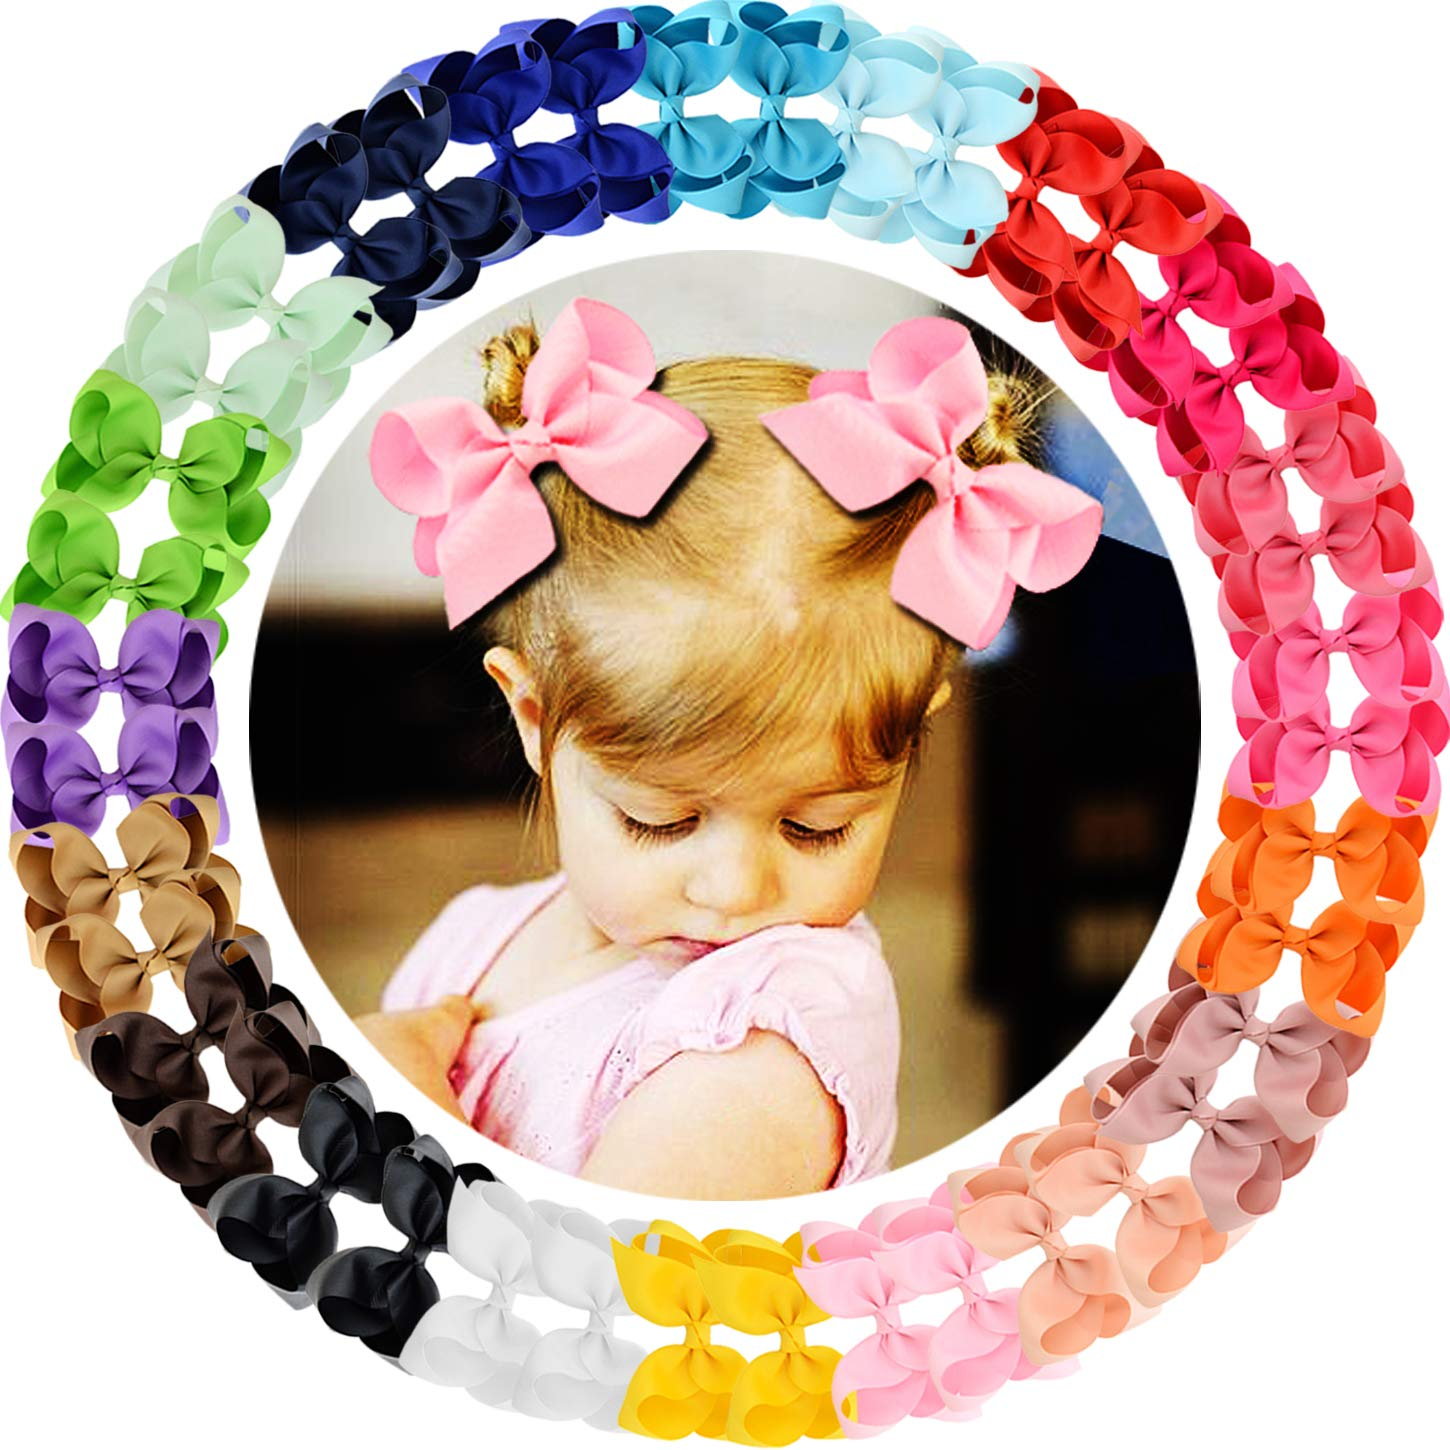 Top 10 Best Baby Hair Clips (2020 Reviews & Buying Guide) 2